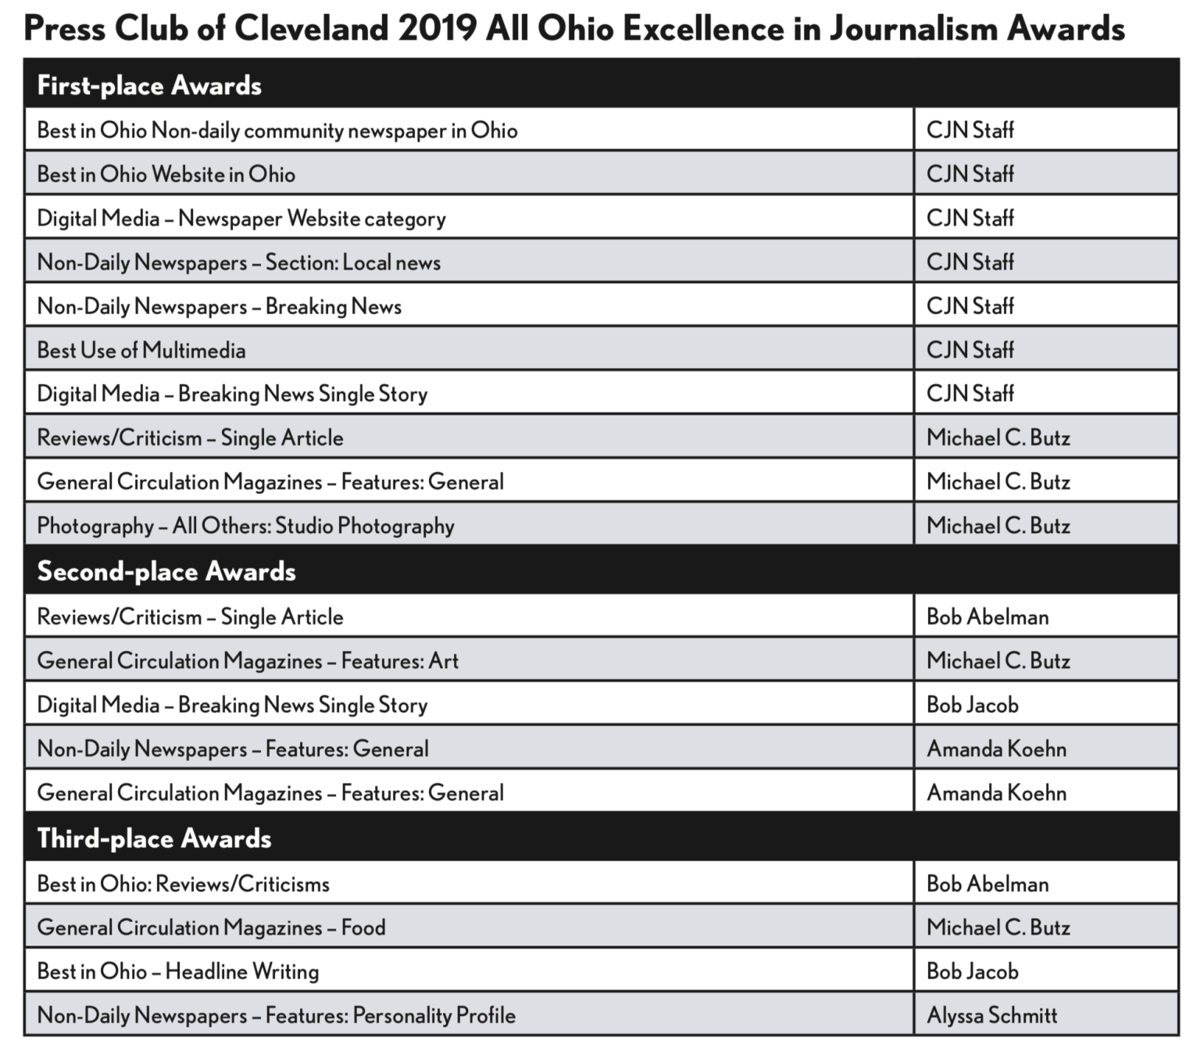 2019 press club awards